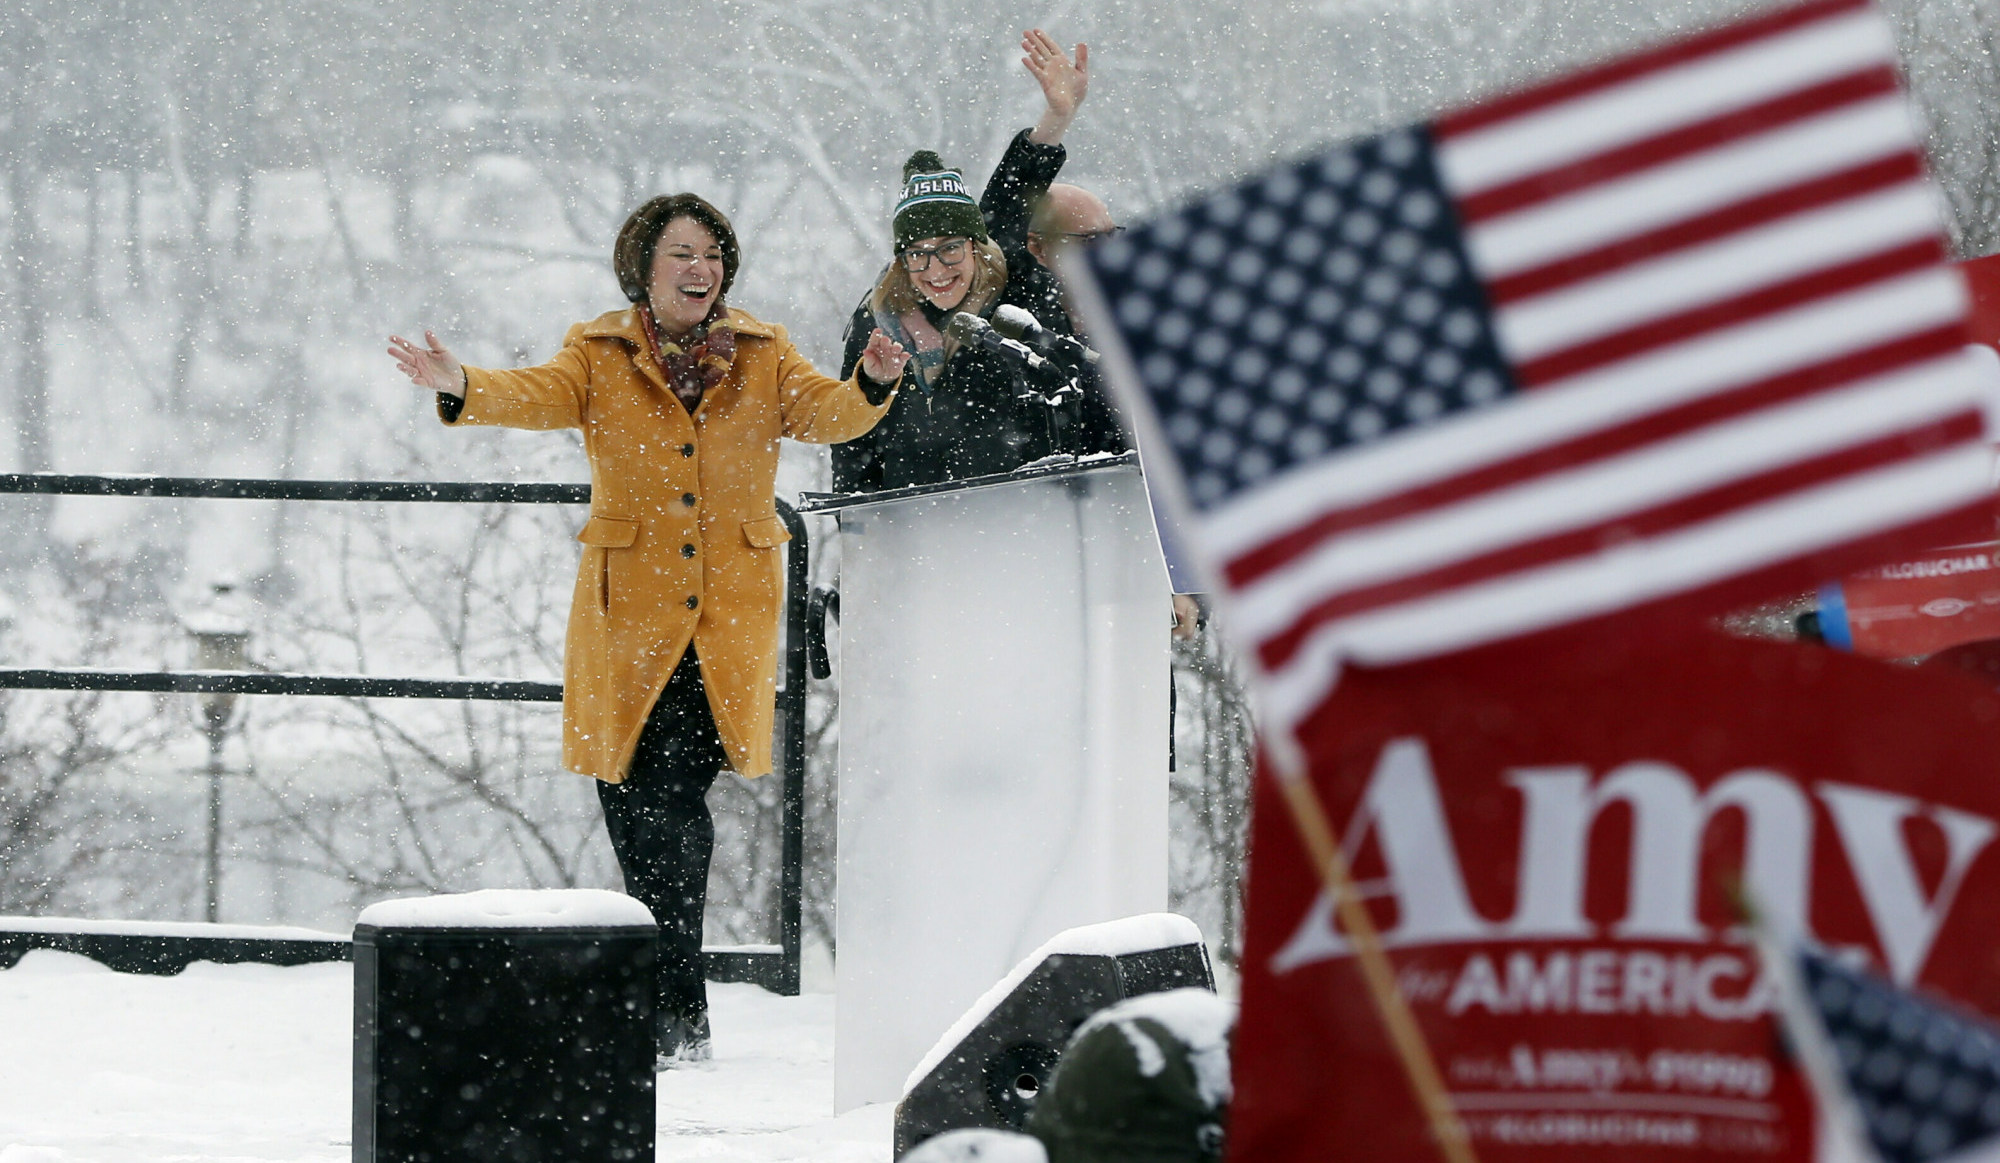 Senator Amy Klobuchar (D-MN) arrives at a campaign rally in Minneapolis on February 10 at which she announced her bid for the 2020 presidential race ( Image )